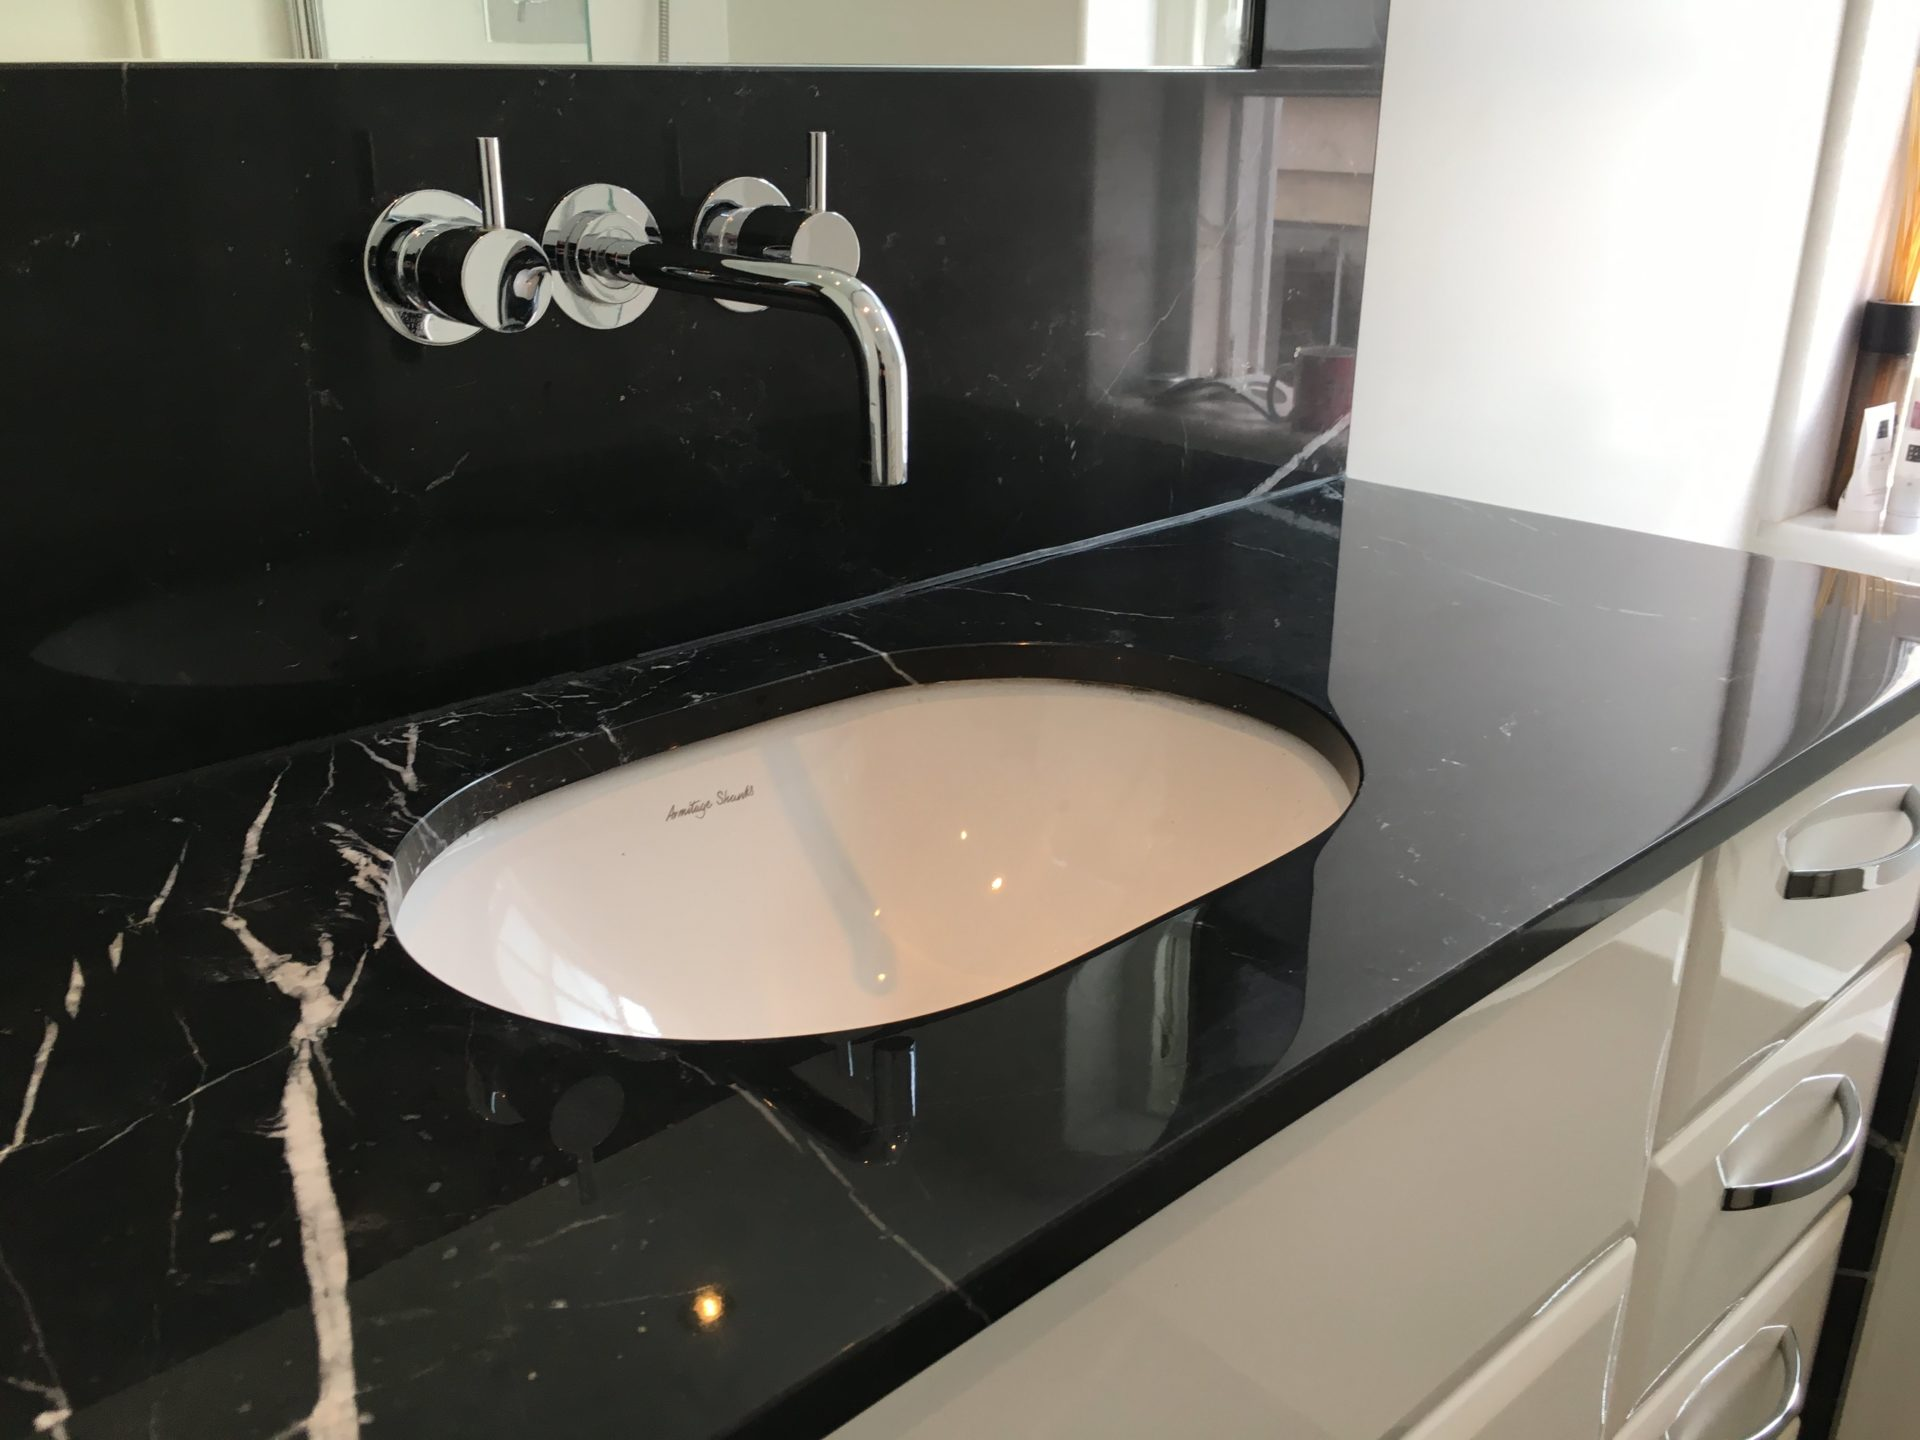 Marine Black Marble with a Superb Surface and Appearance